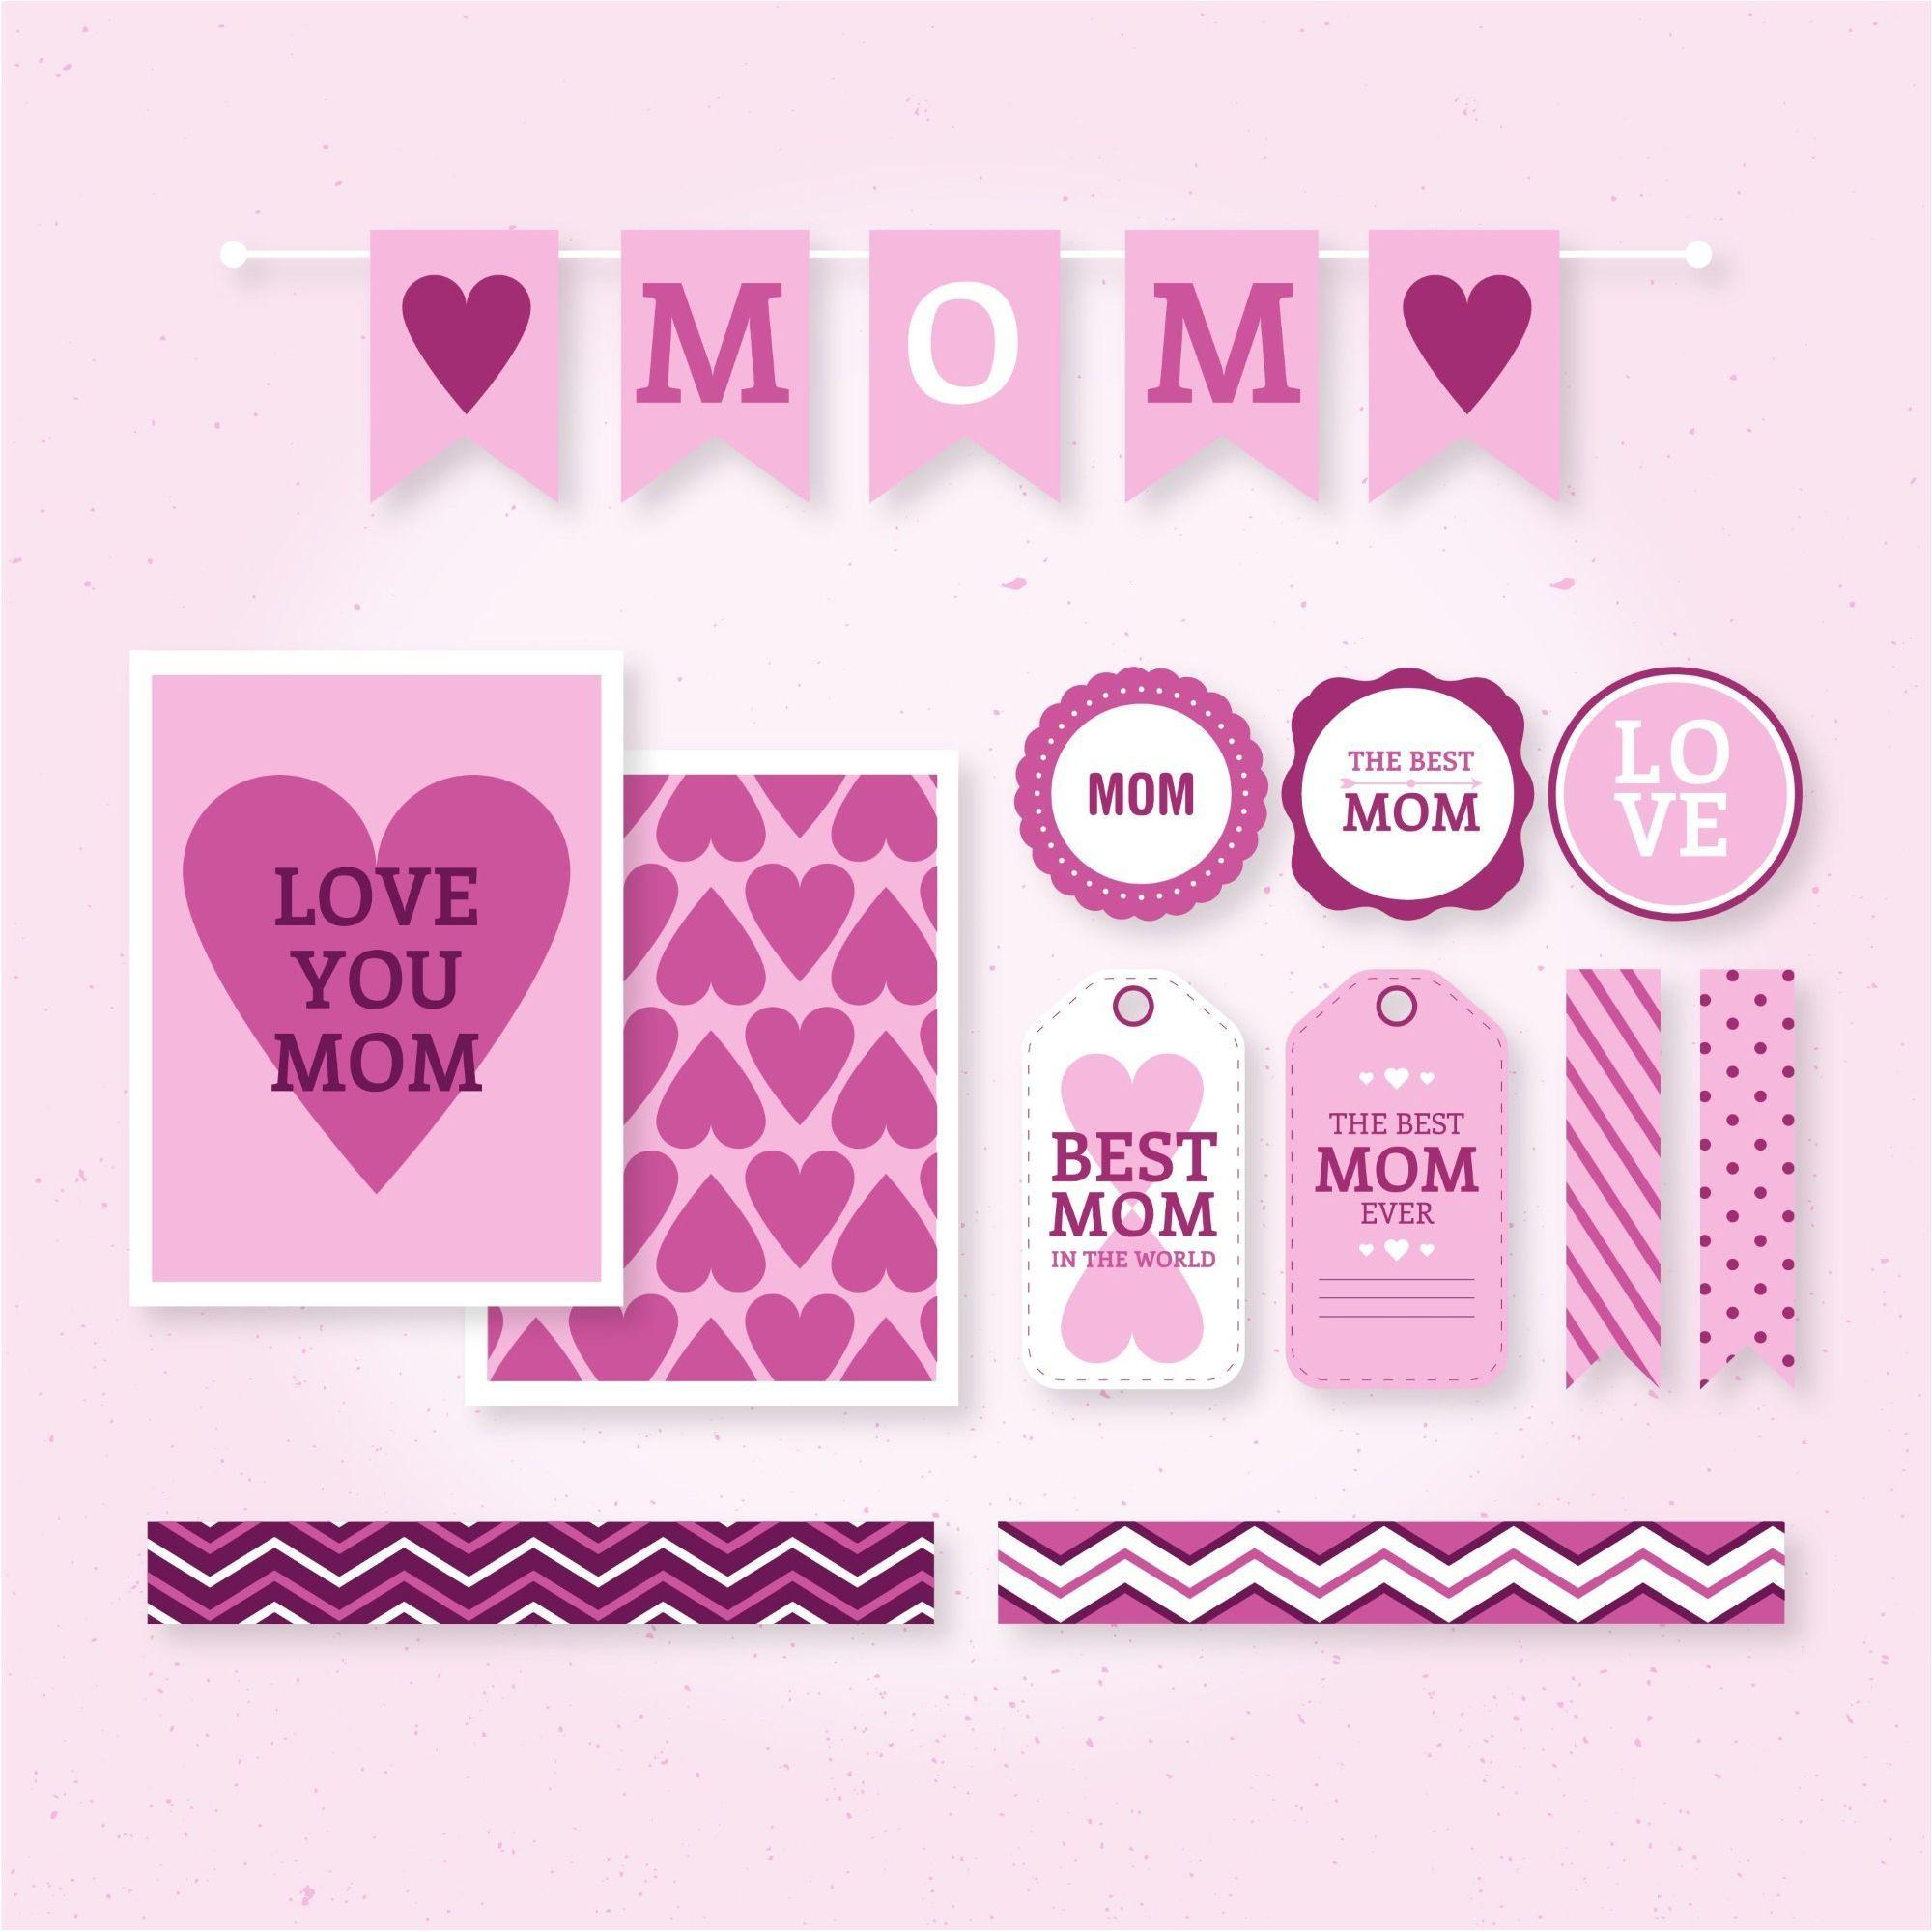 Love Happy Mother Day Vector & Wallpaper background | 500 Best ...